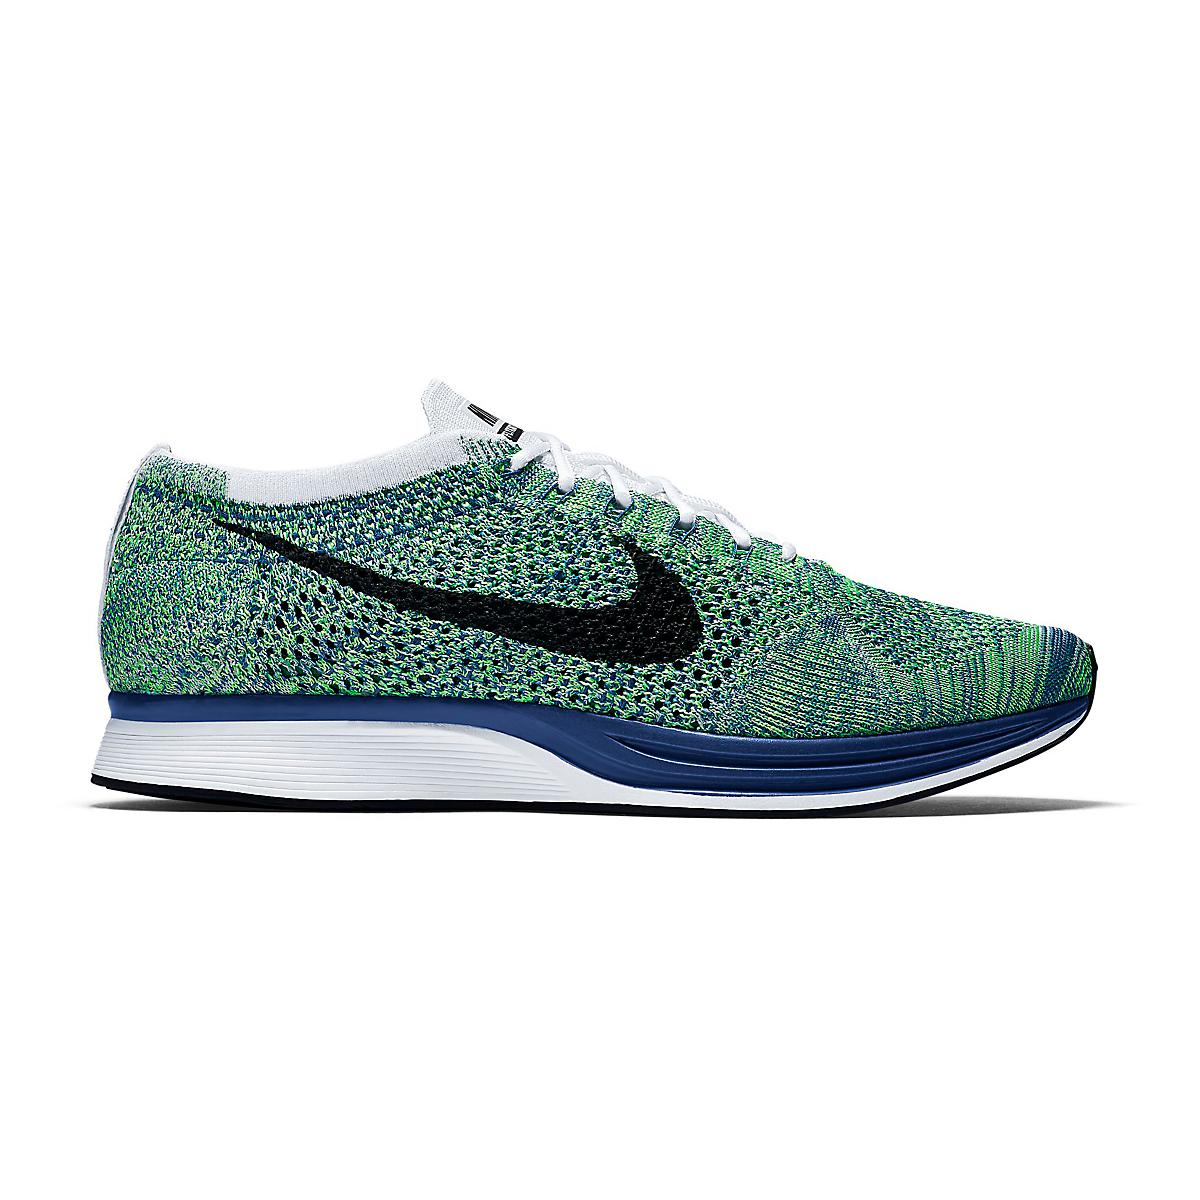 Nike Flyknit Racer at Road Runner Sports a7e8aad34